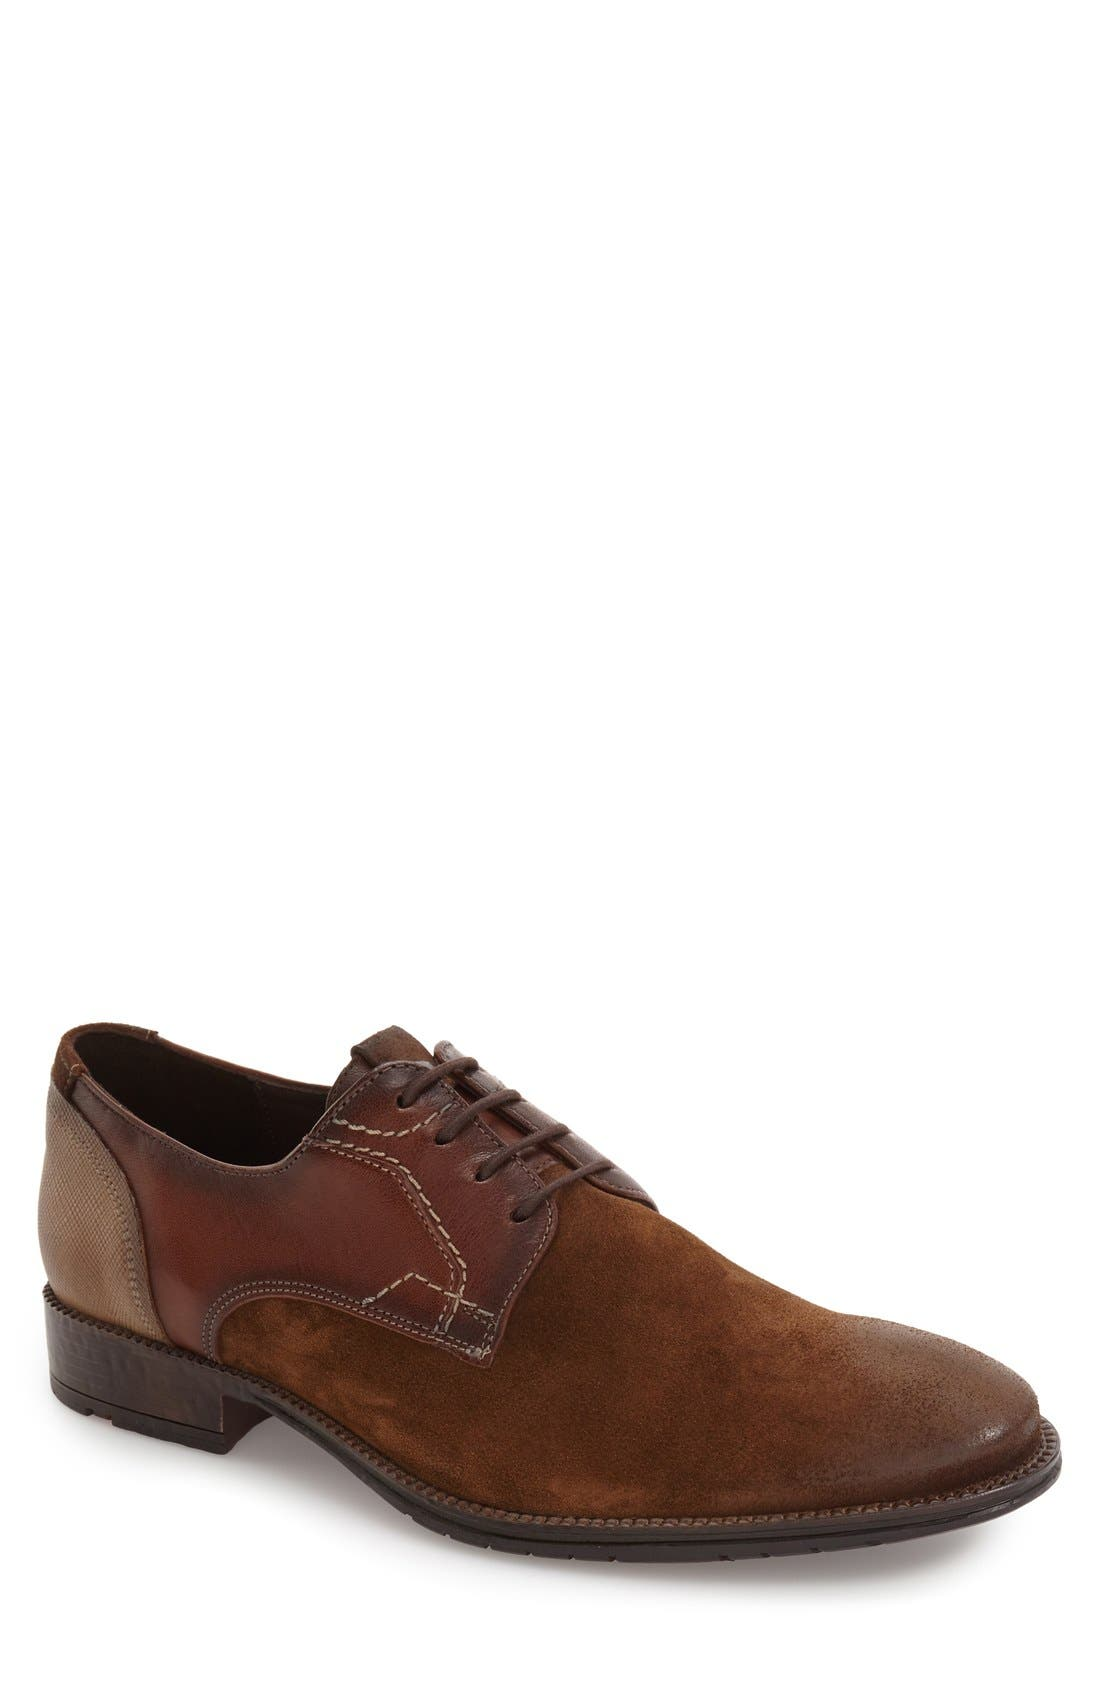 Derek Plain Toe Derby,                             Main thumbnail 1, color,                             219